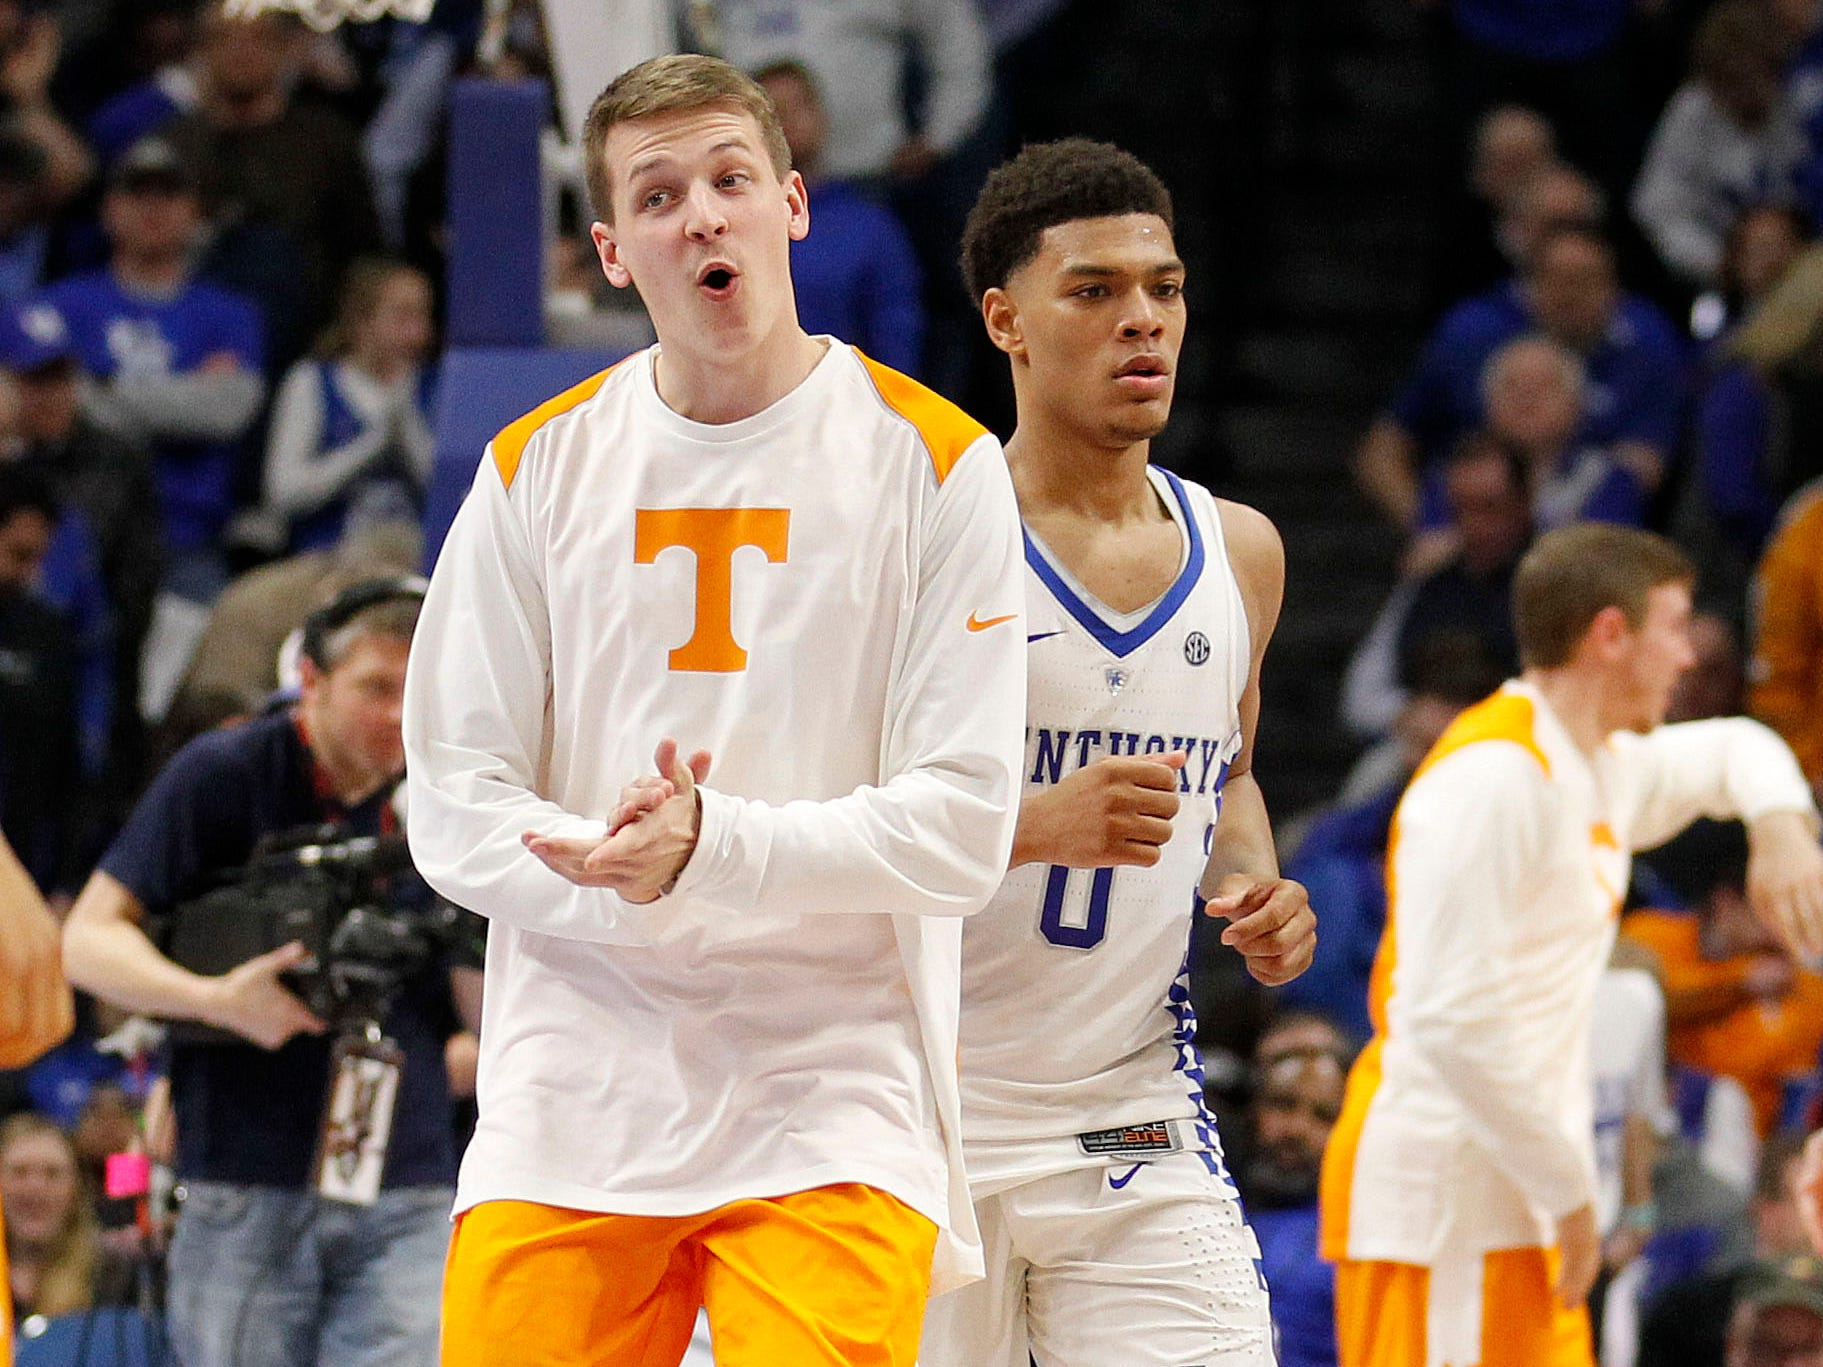 Tennessee Volunteers guard Lucas Campbell (24) celebrates during the game against the Kentucky Wildcats in the second half at Rupp Arena. Tennessee defeated Kentucky 61-59.